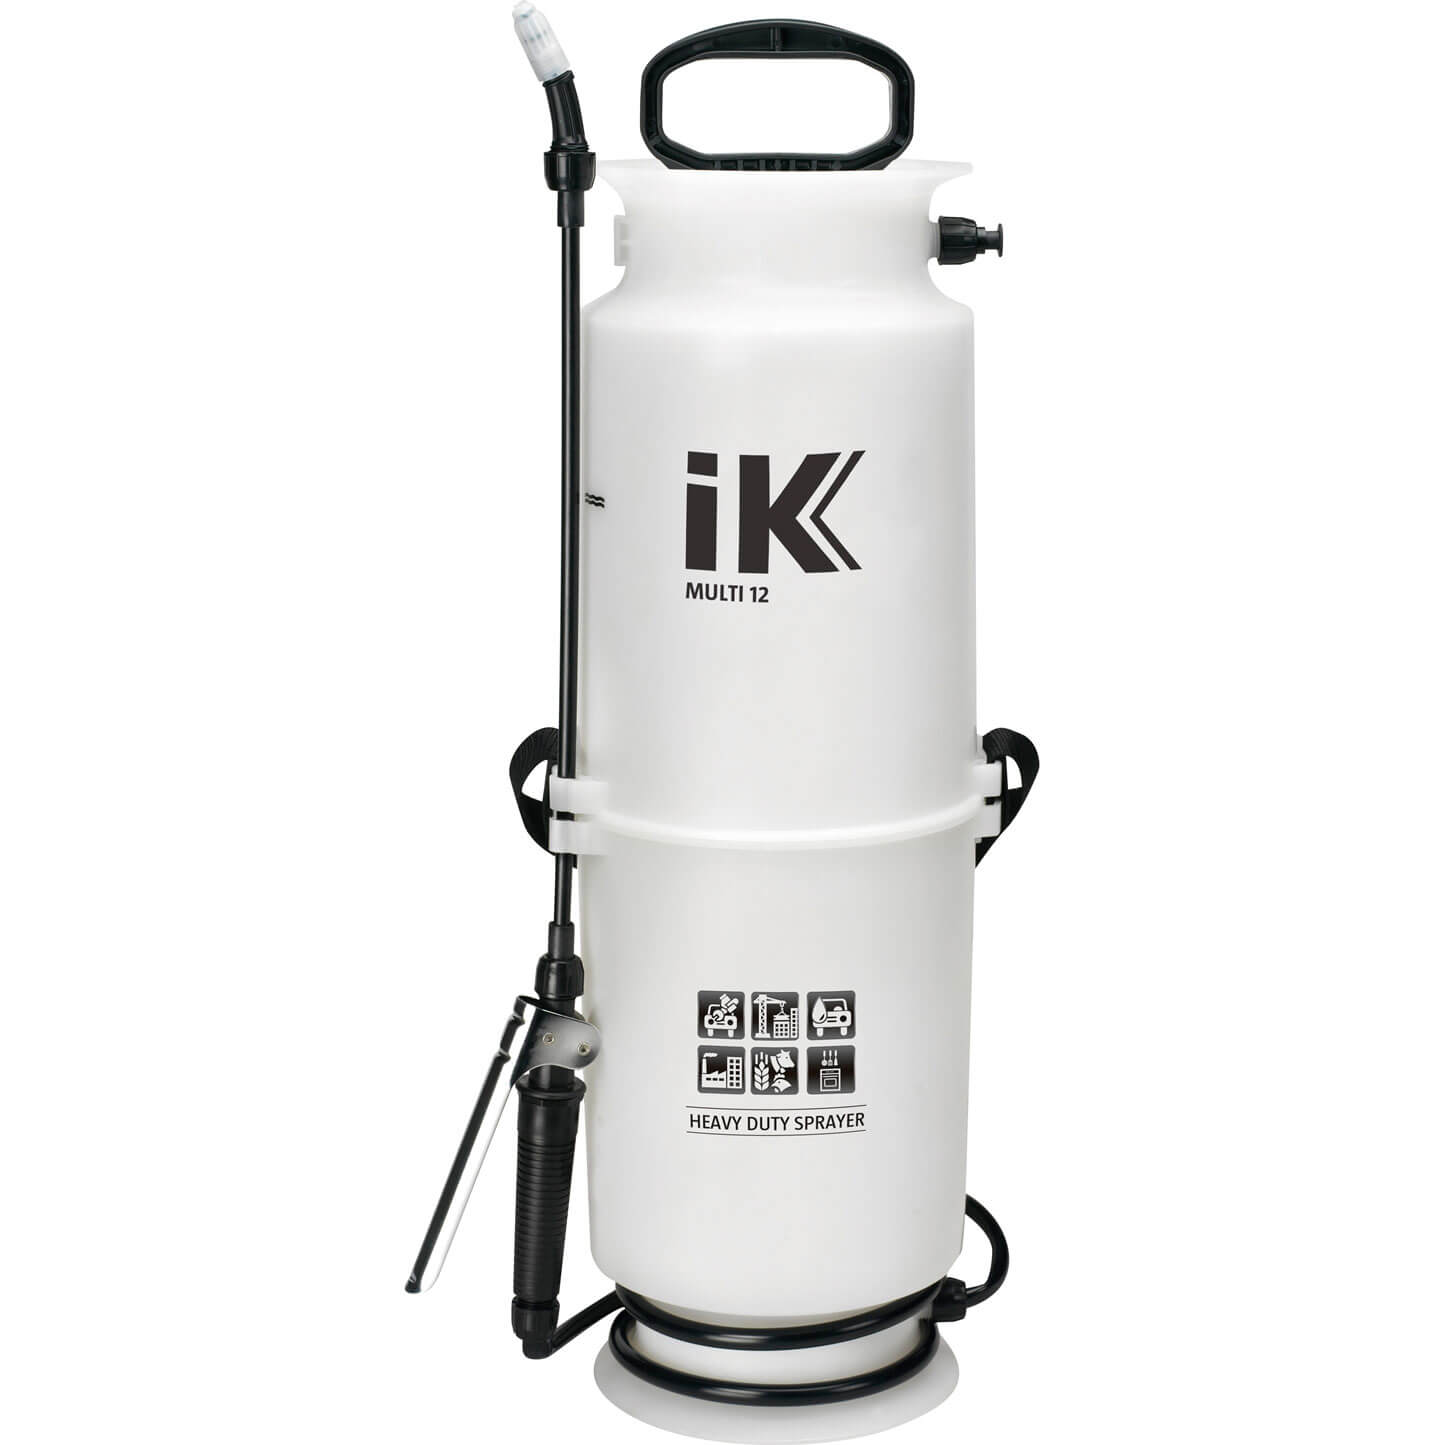 Image of Matabi IK Multi 12 Industrial Sprayer 8l